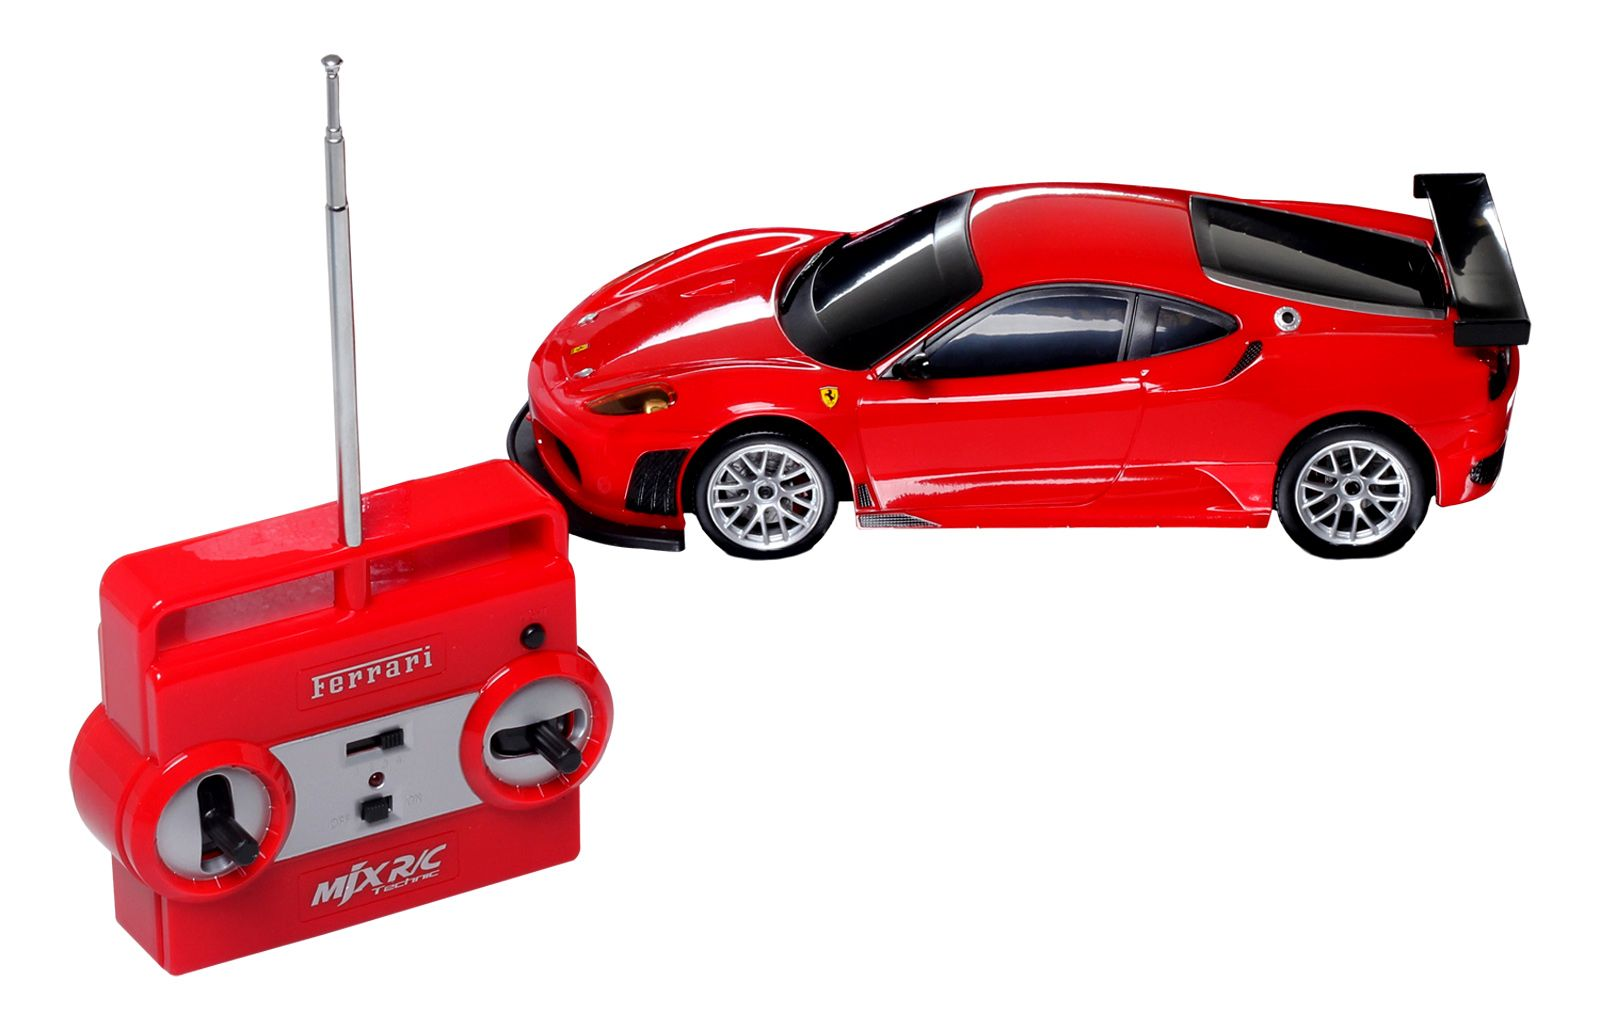 Firstcry Mjx F 430 Gt Ferrari Full Function Remote Control Car